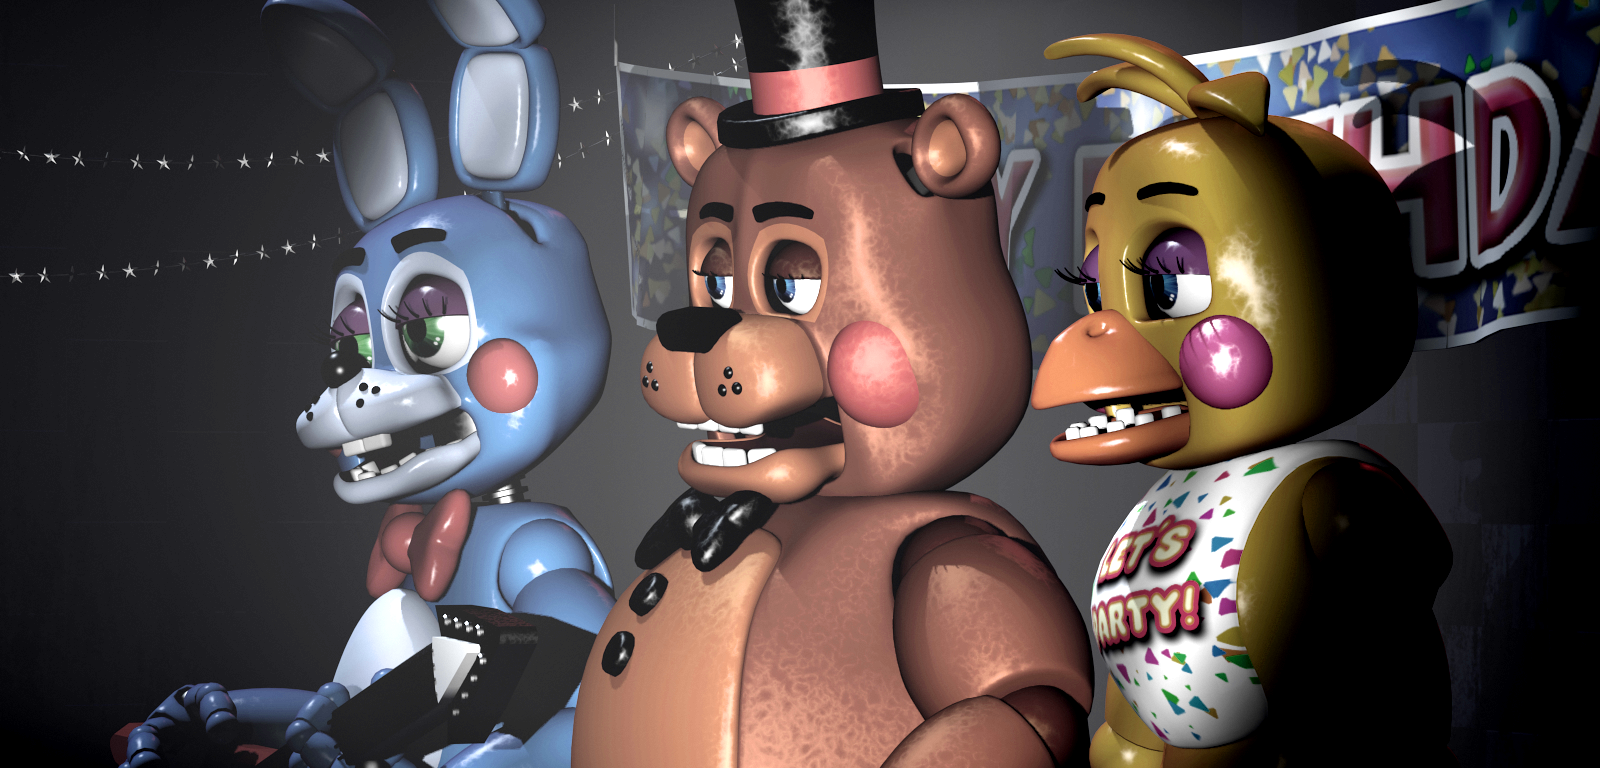 5 Nights At Freddy's Chica toy chica   five nights at freddy's wiki   fandom